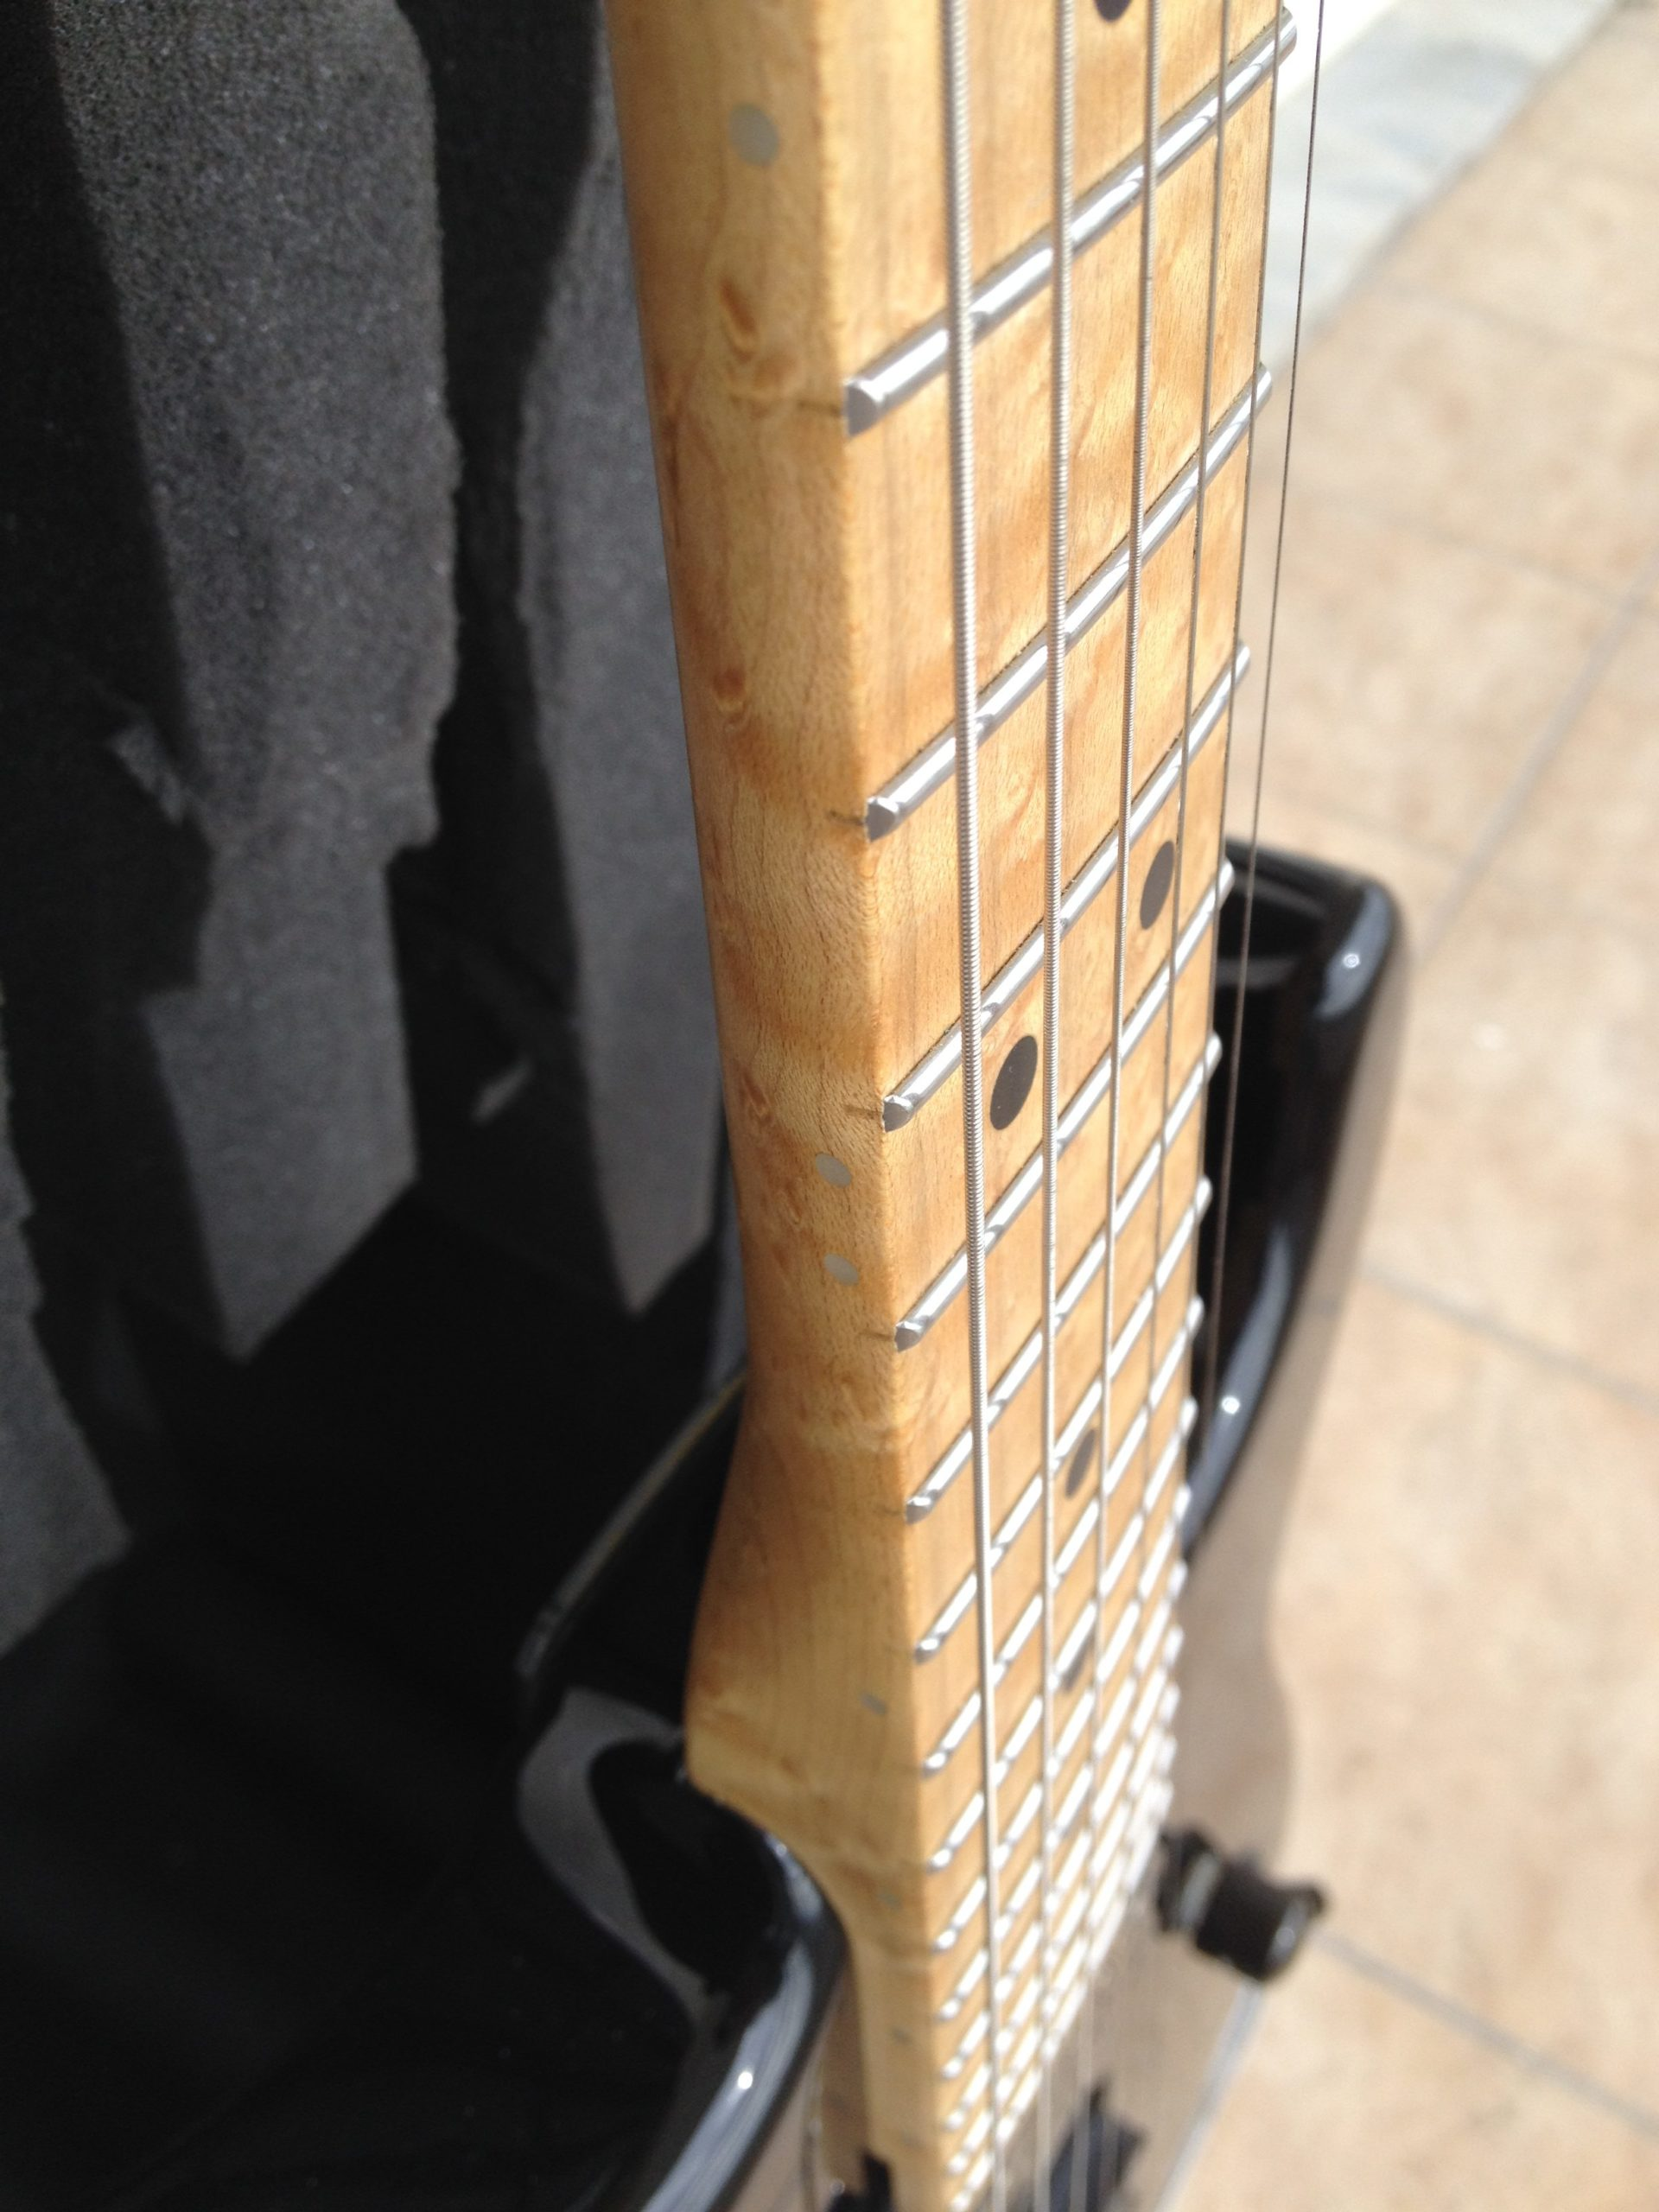 Tom McDyne - SavaGear - Charvel Modern Classic signature moded 1 of 1 ever produced